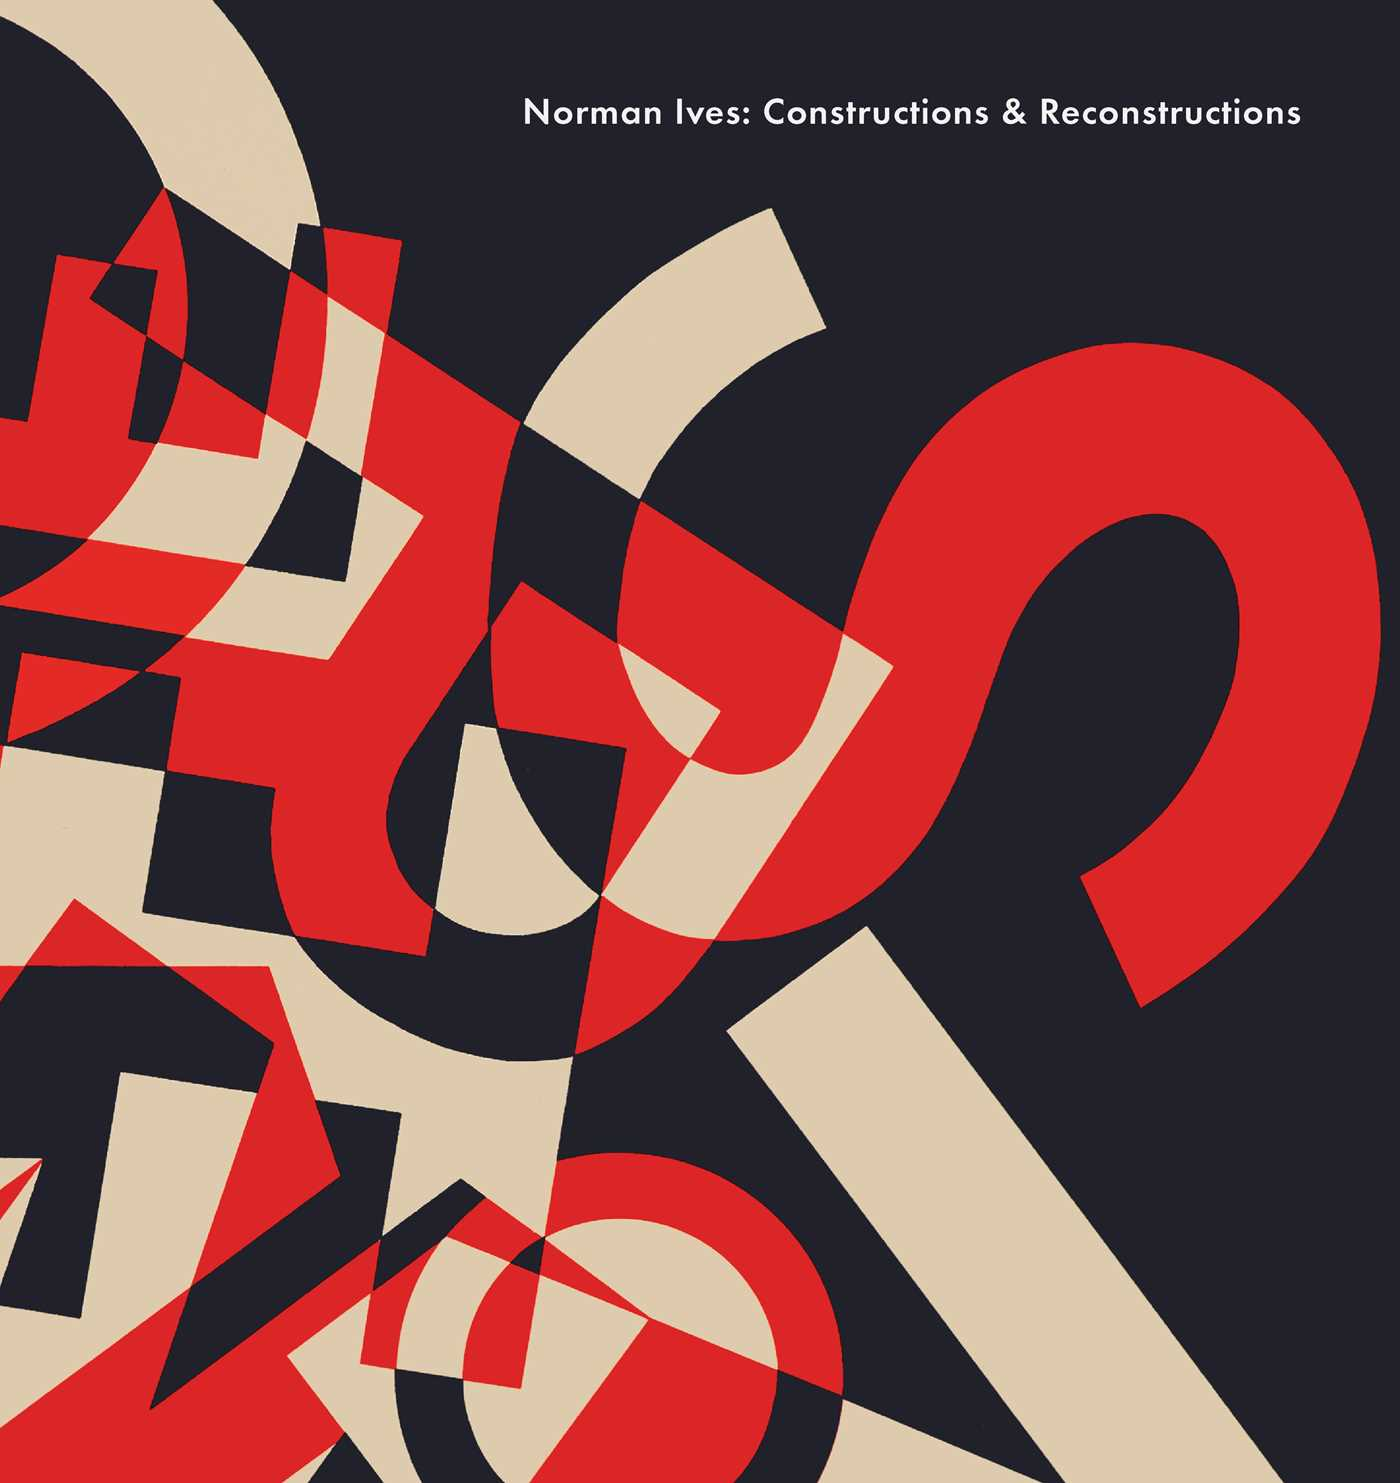 Picture of Norman Ives: Constructions & Reconstructions